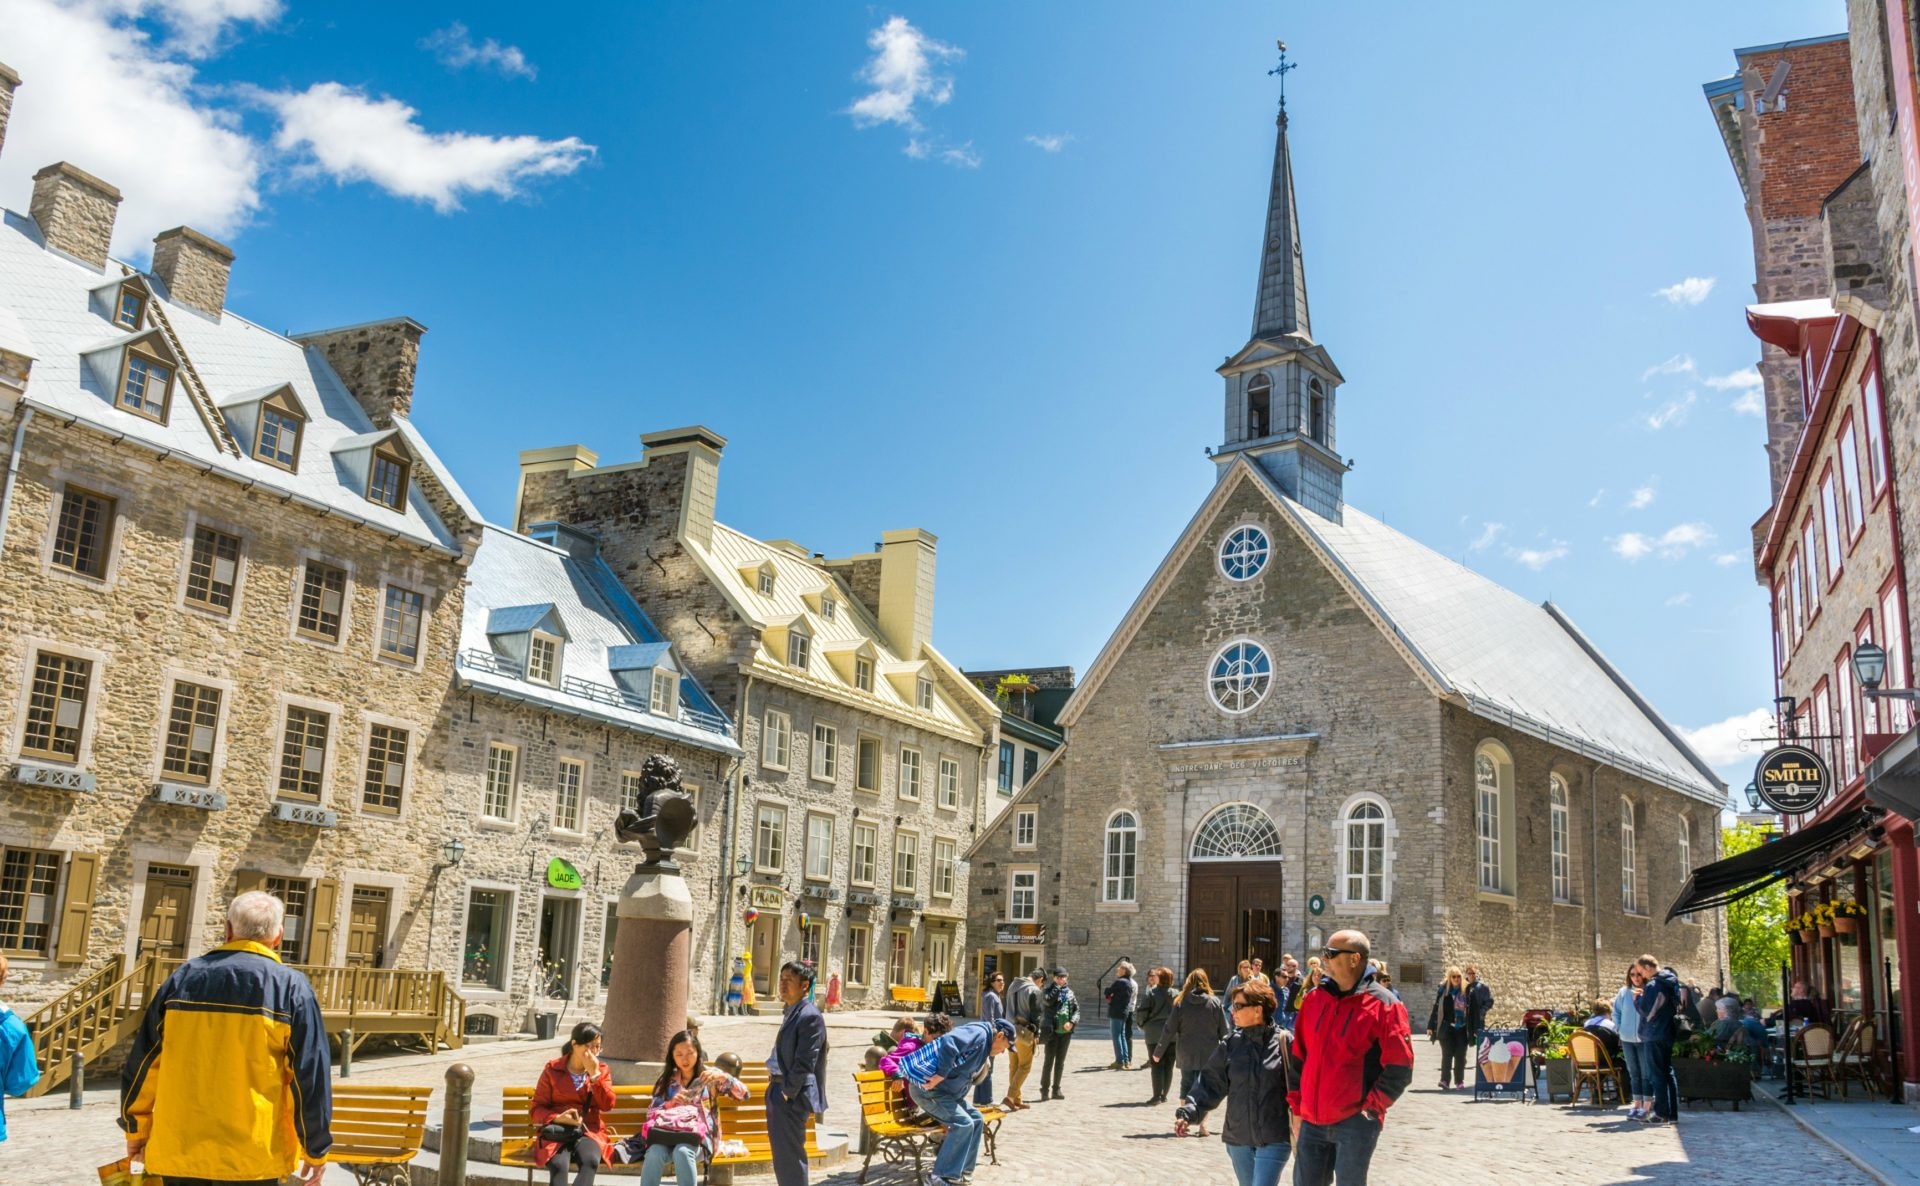 Quebec has an excellently preserved historic centre